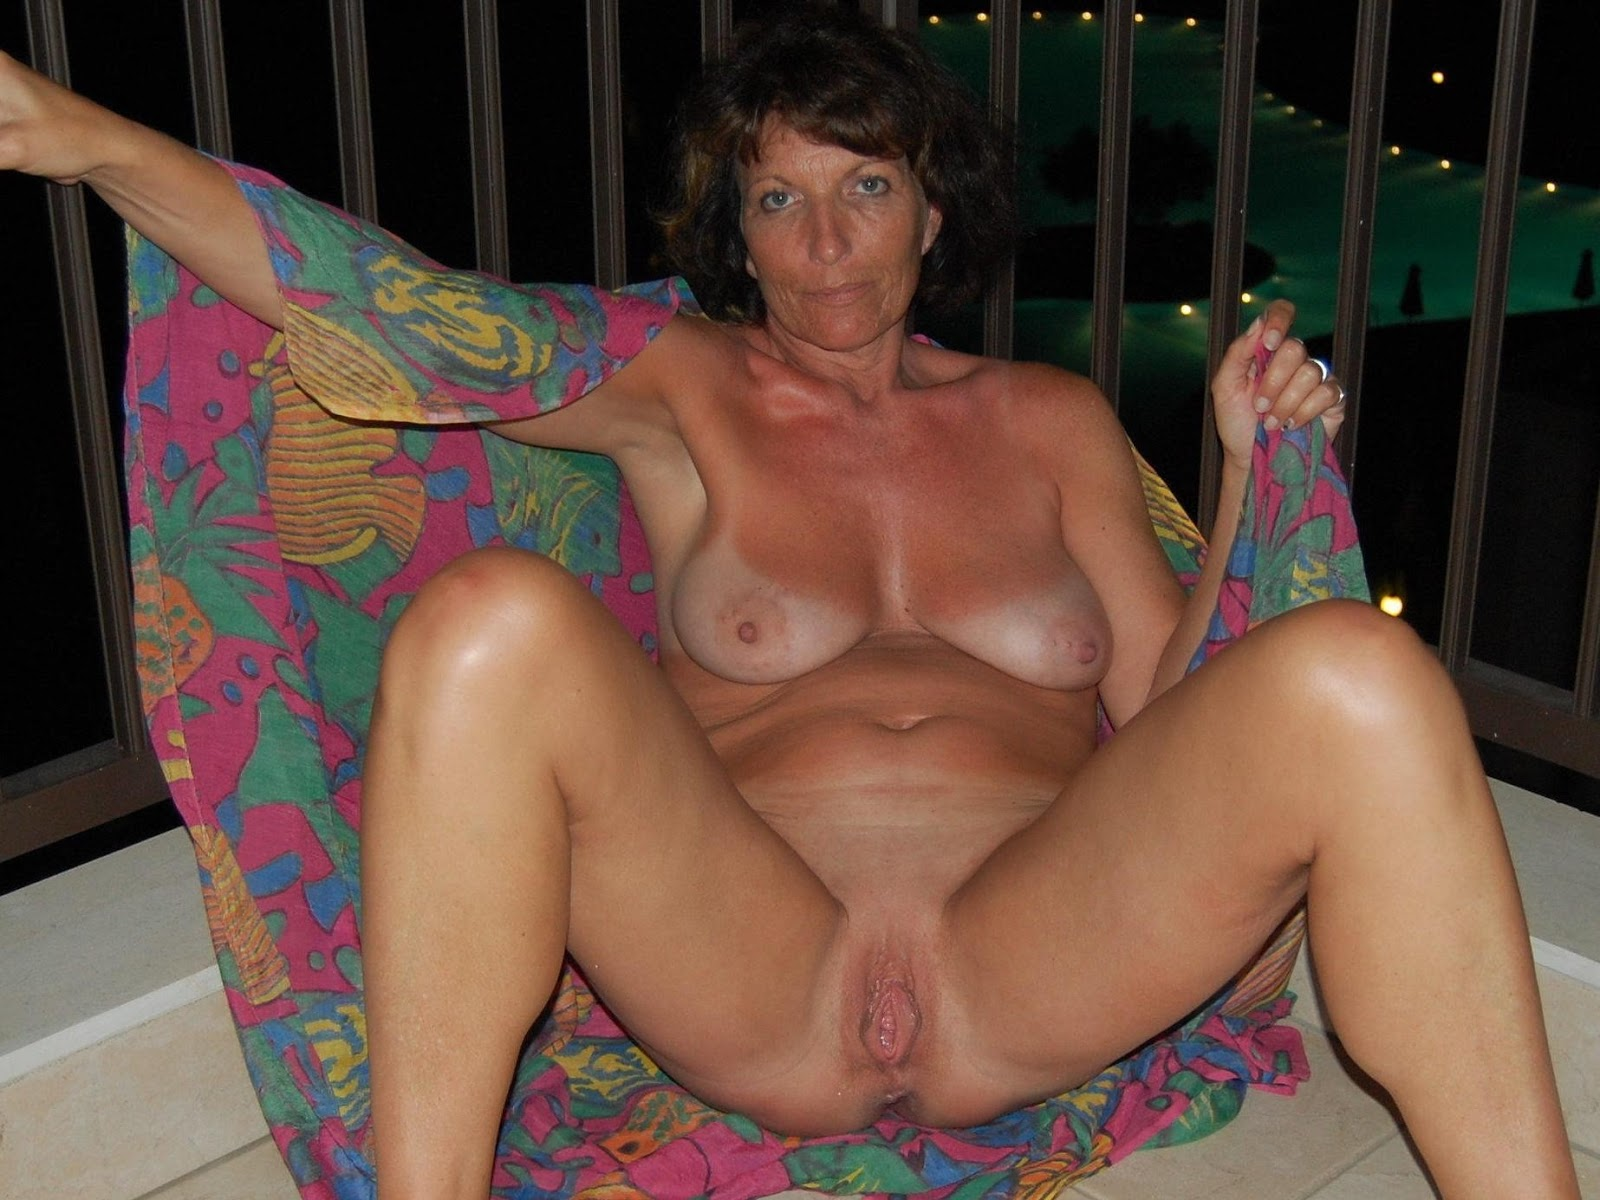 Older amateur women xxx thumbnail galleries 15